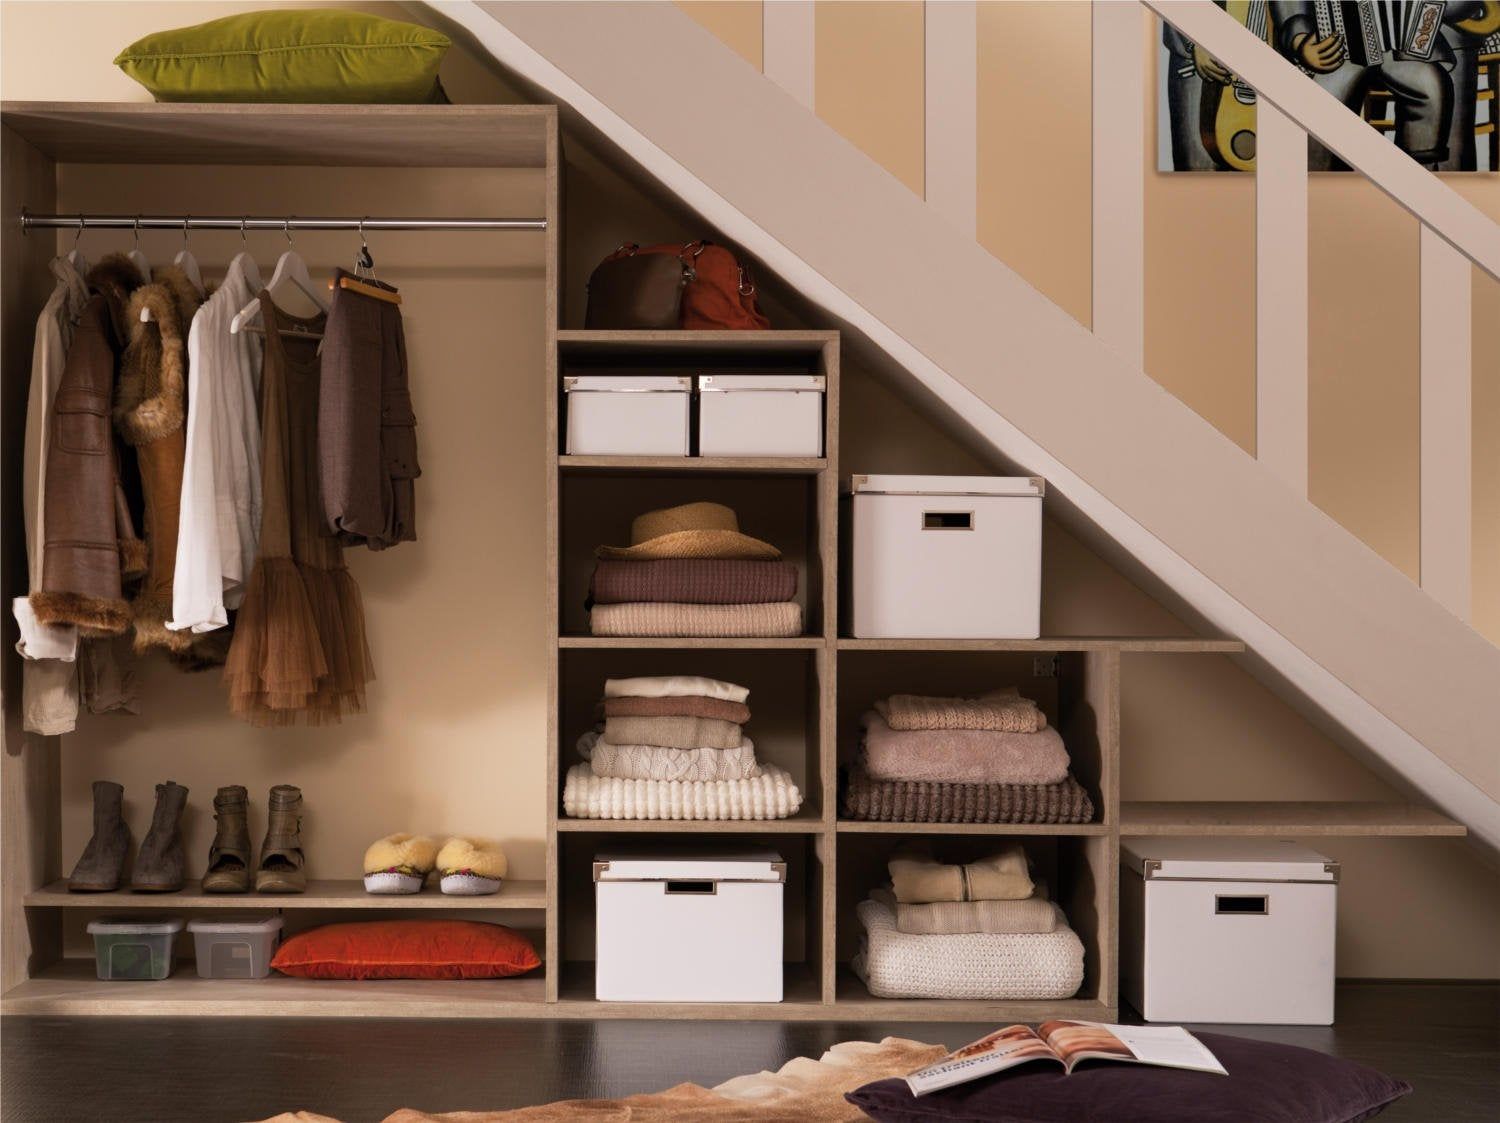 Comment cr er un dressing sous un escalier leroy merlin for Meuble dressing leroy merlin